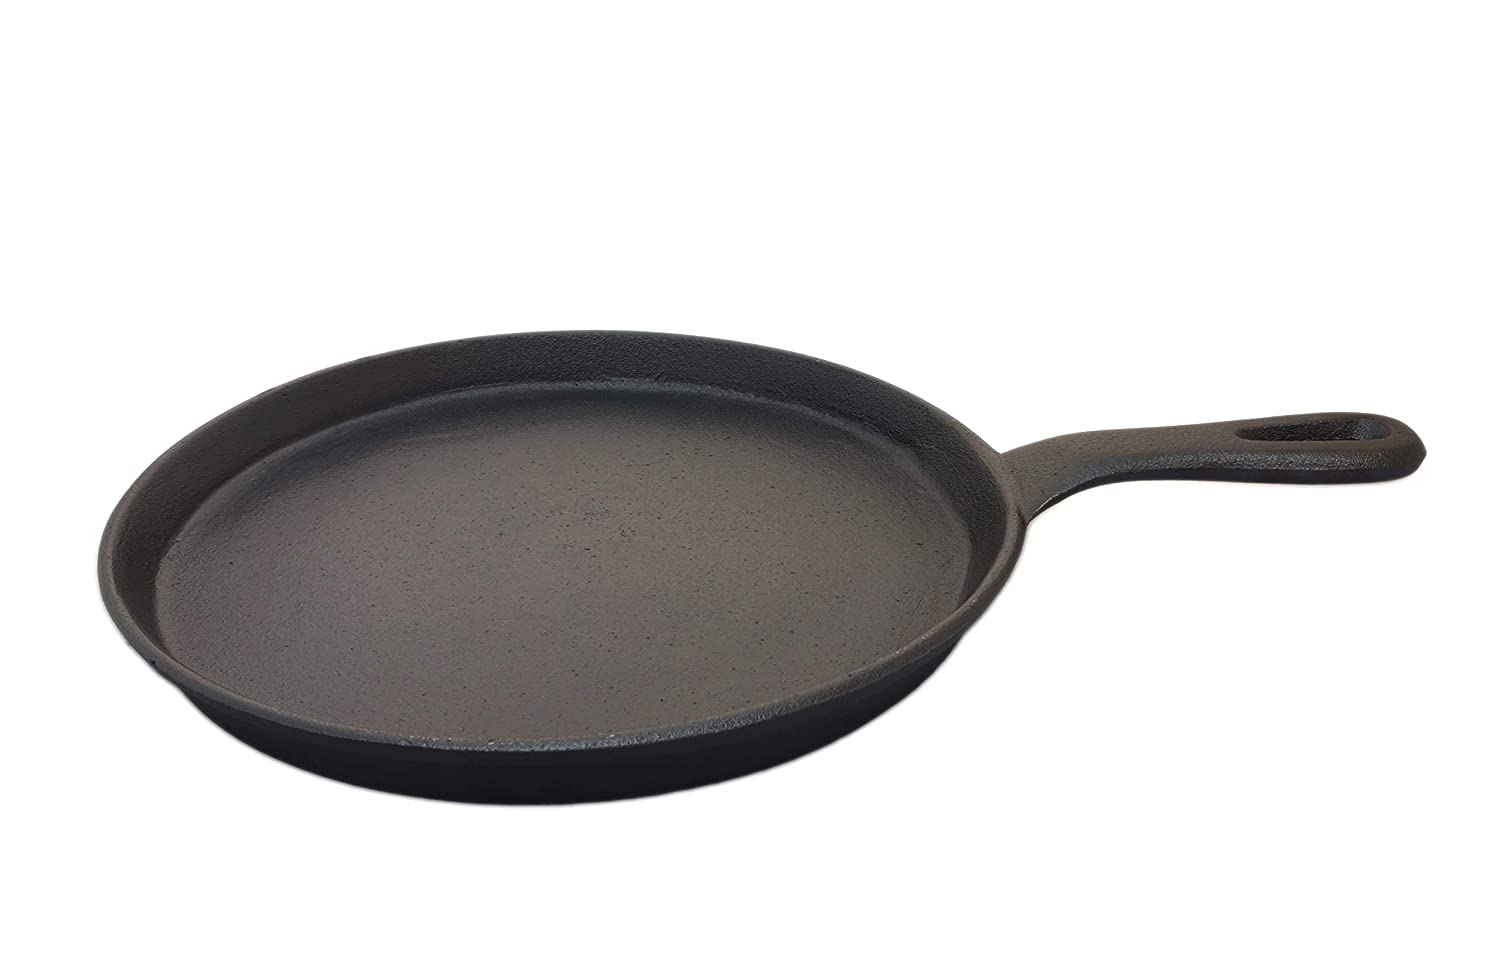 eKitchen Pre-Seasoned Cast Iron Flat Tawa/Pan/dosa kal